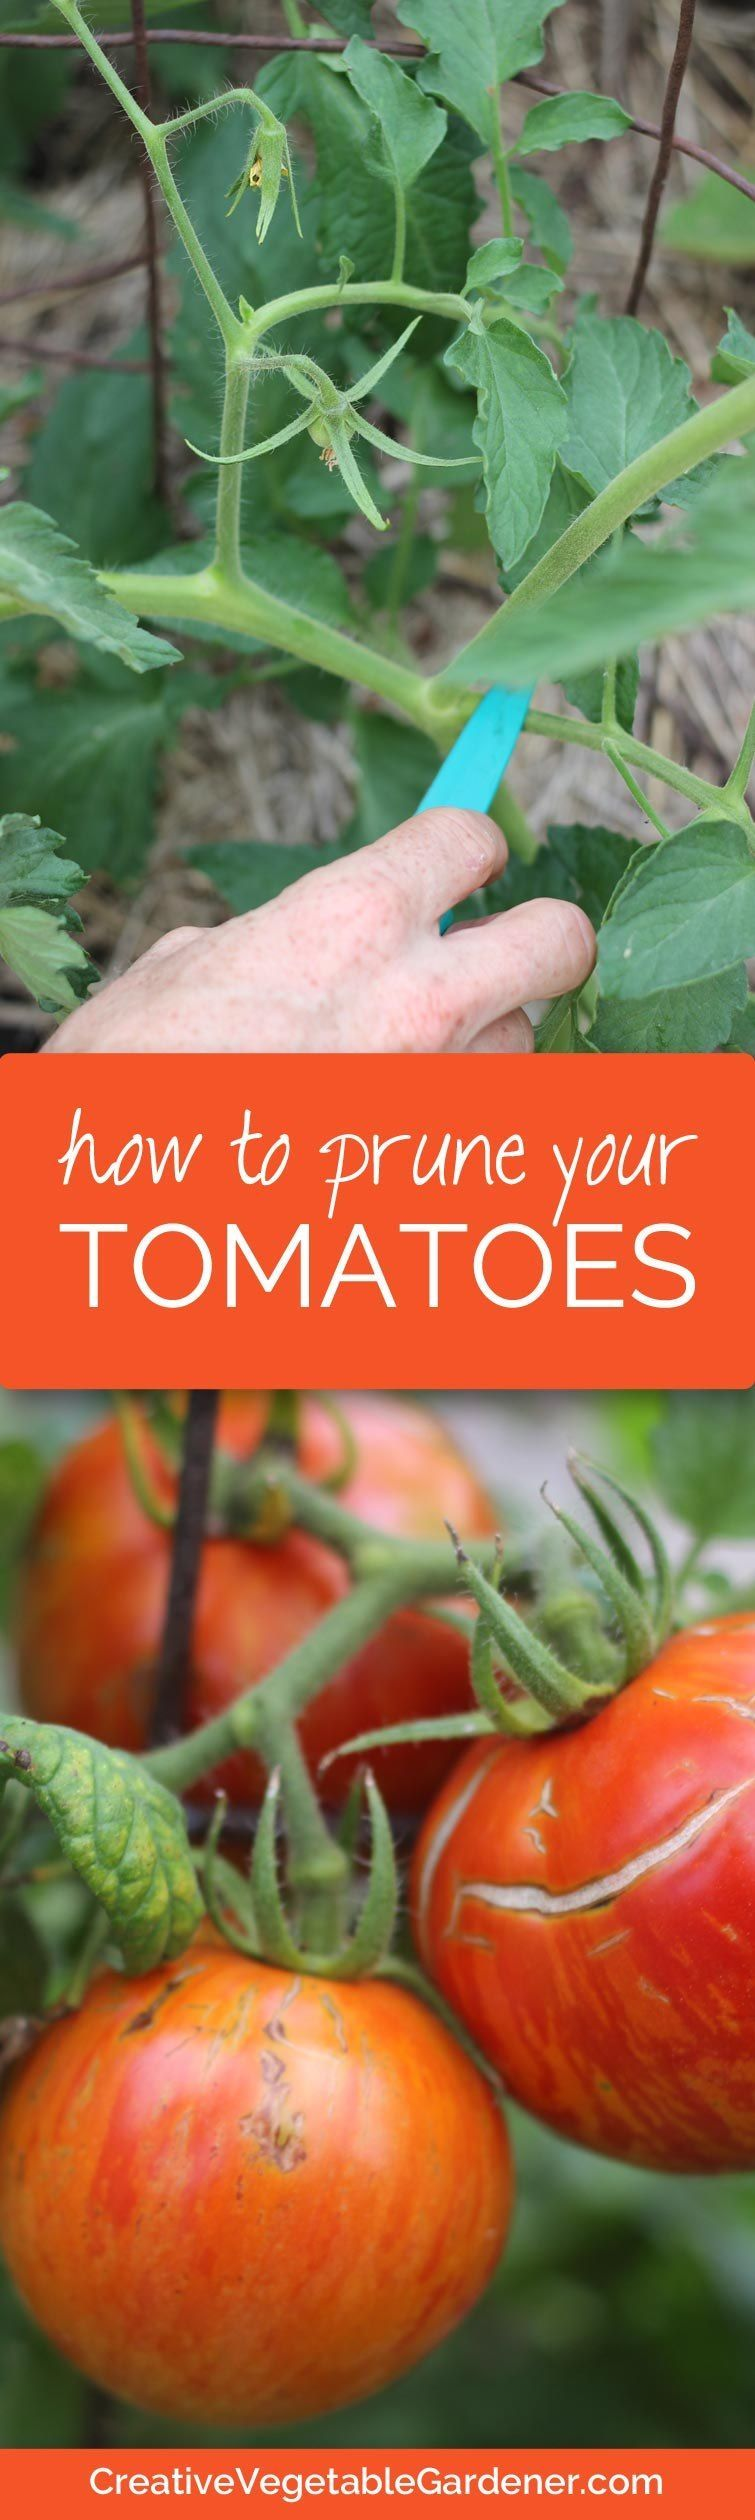 How to Prune Your Tomato Plants Like an Expert gardening